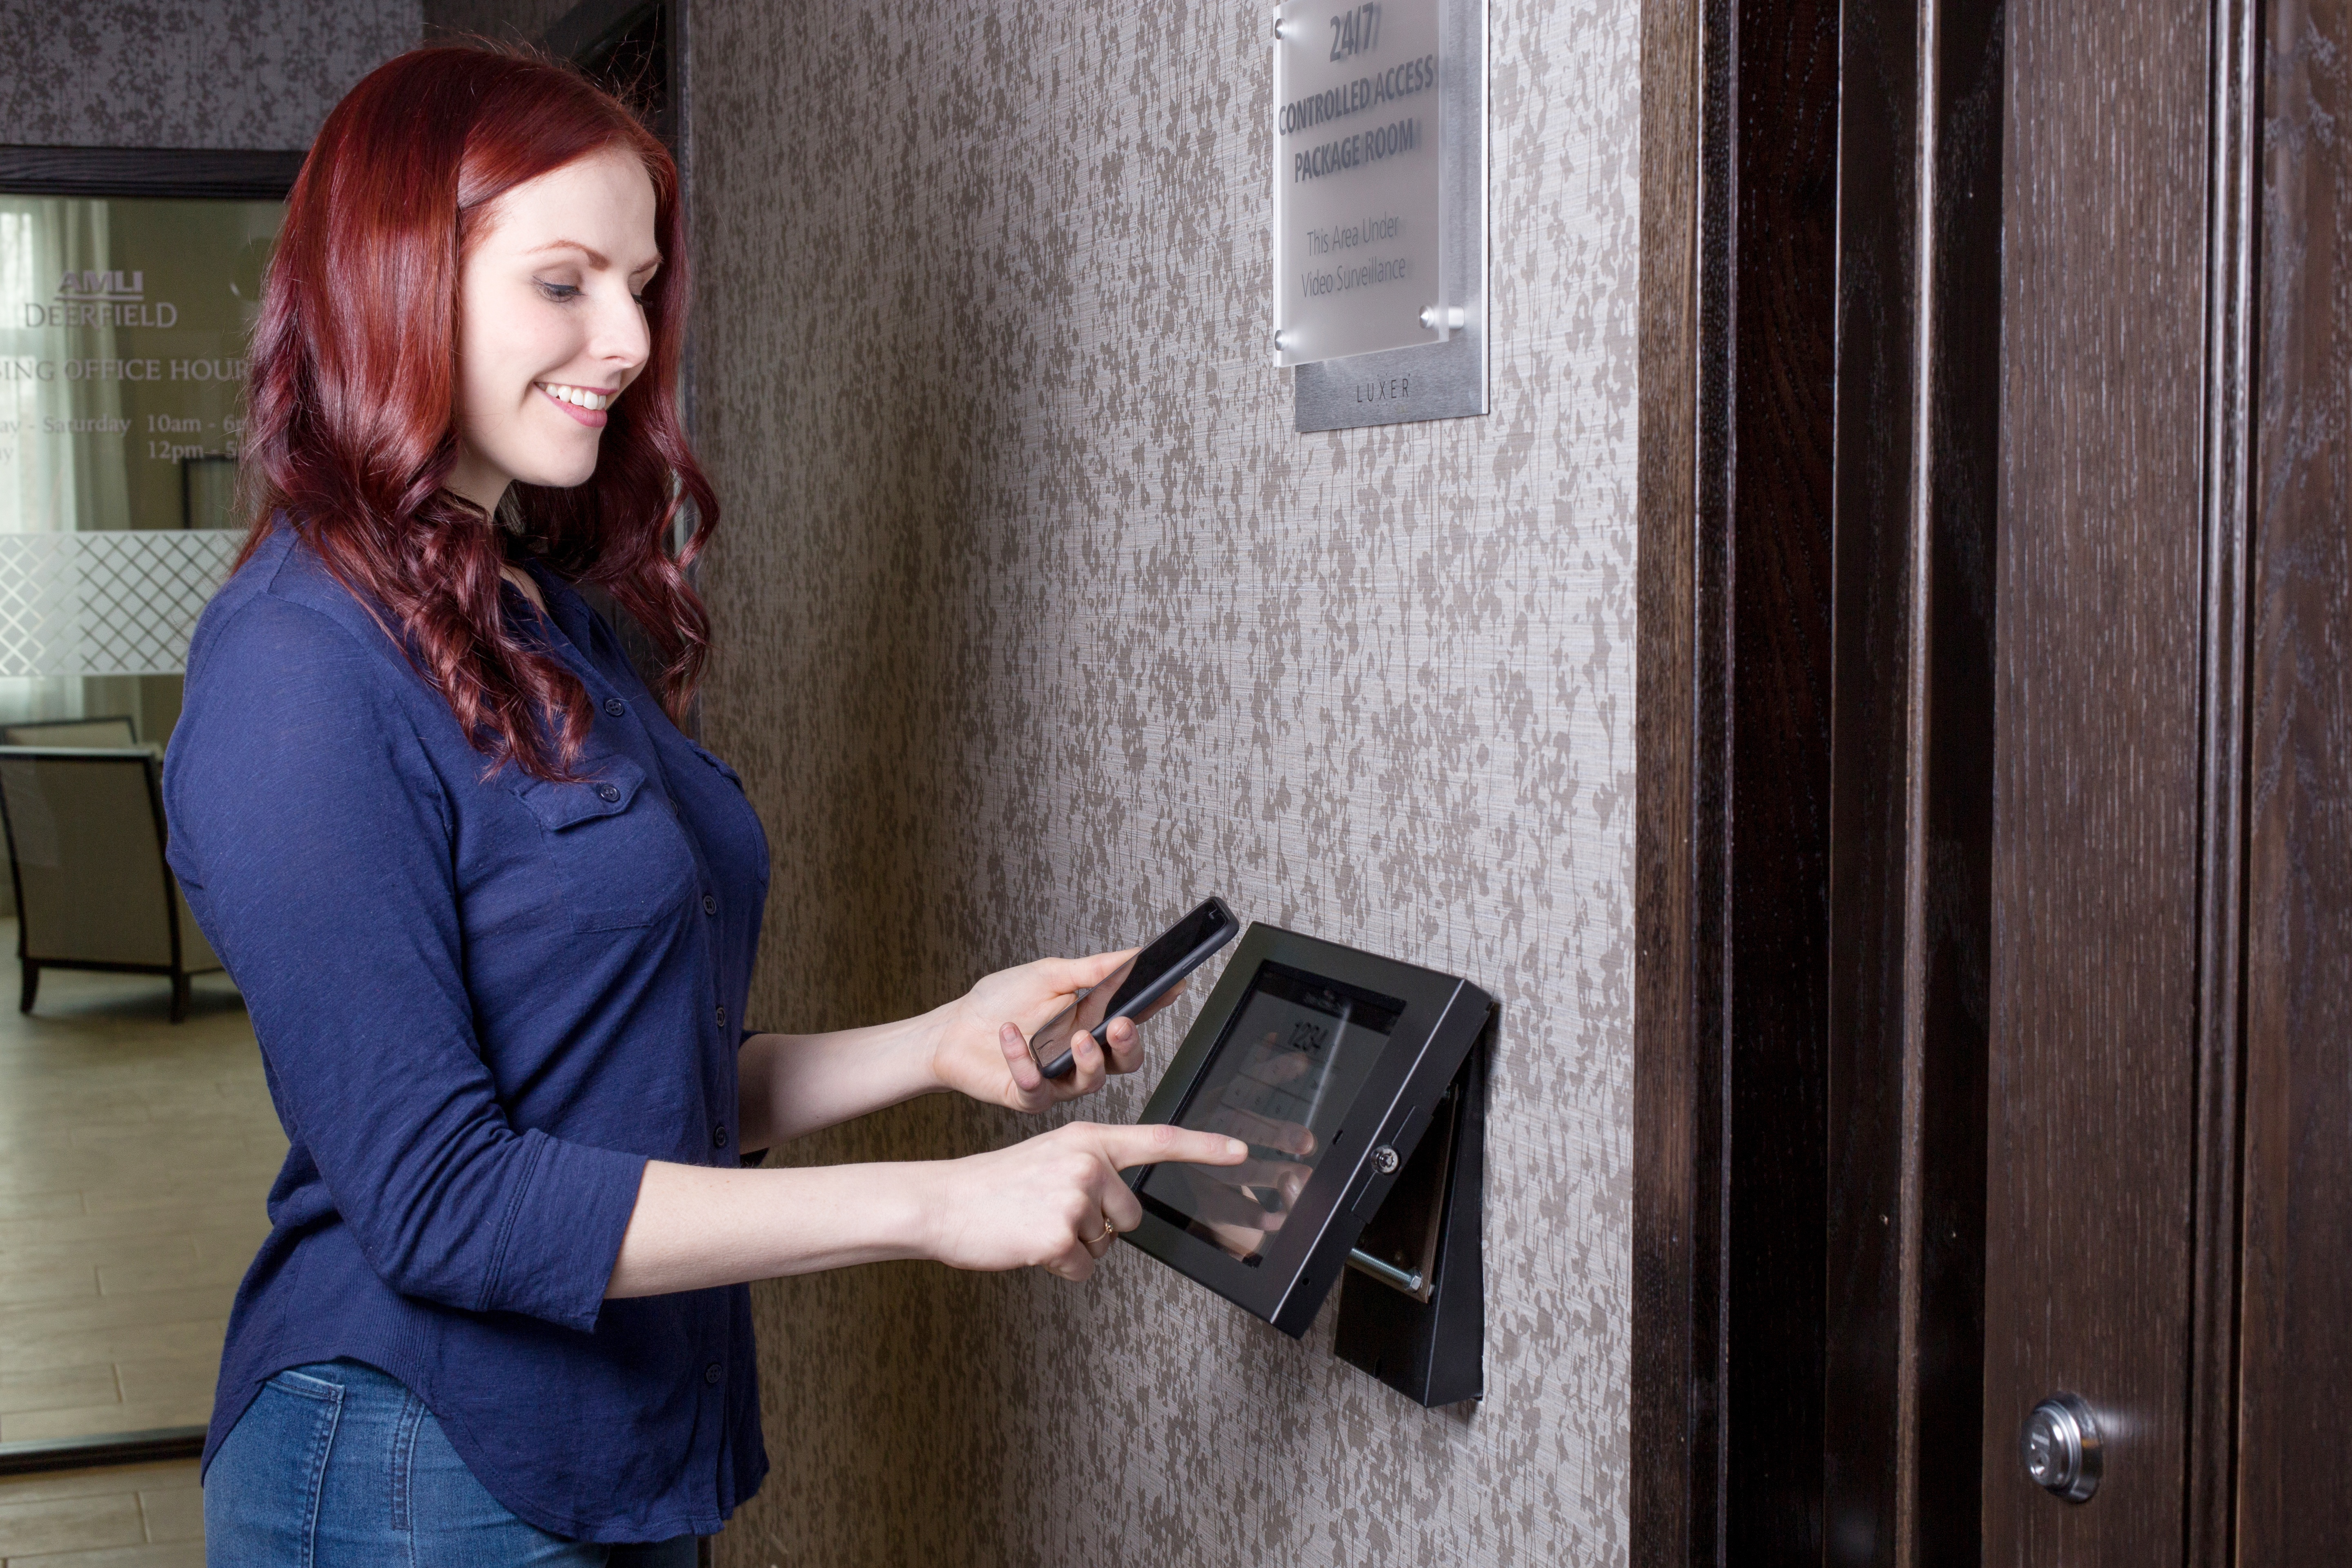 A resident uses the Luxer One Touchscreen to access the Luxer Room.